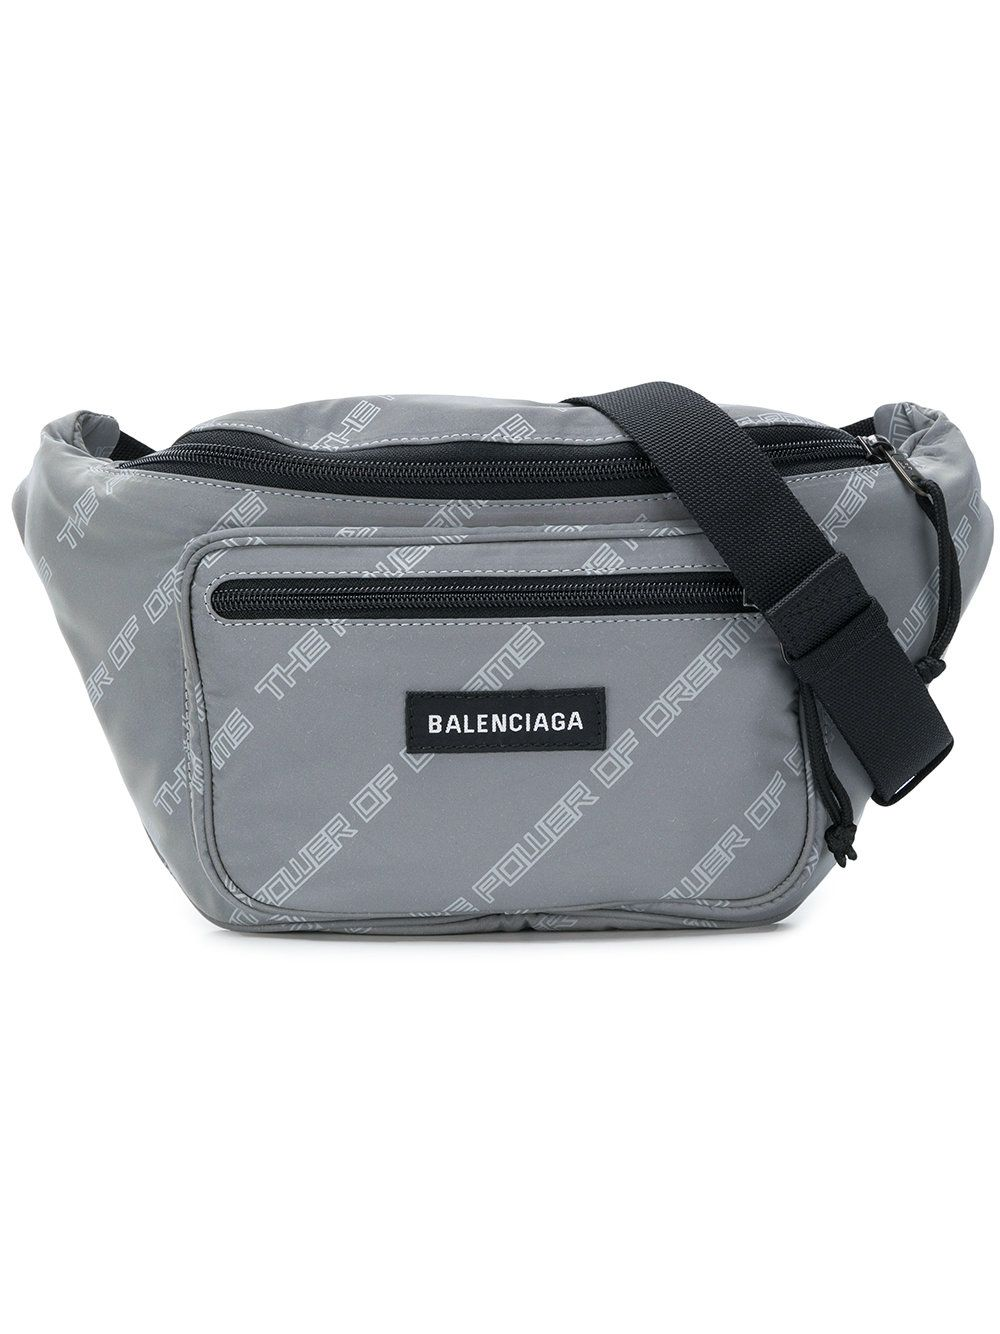 how to choose 2019 discount sale quality products Balenciaga Explorer belt pack | Bags | Balenciaga, Fashion, Bags